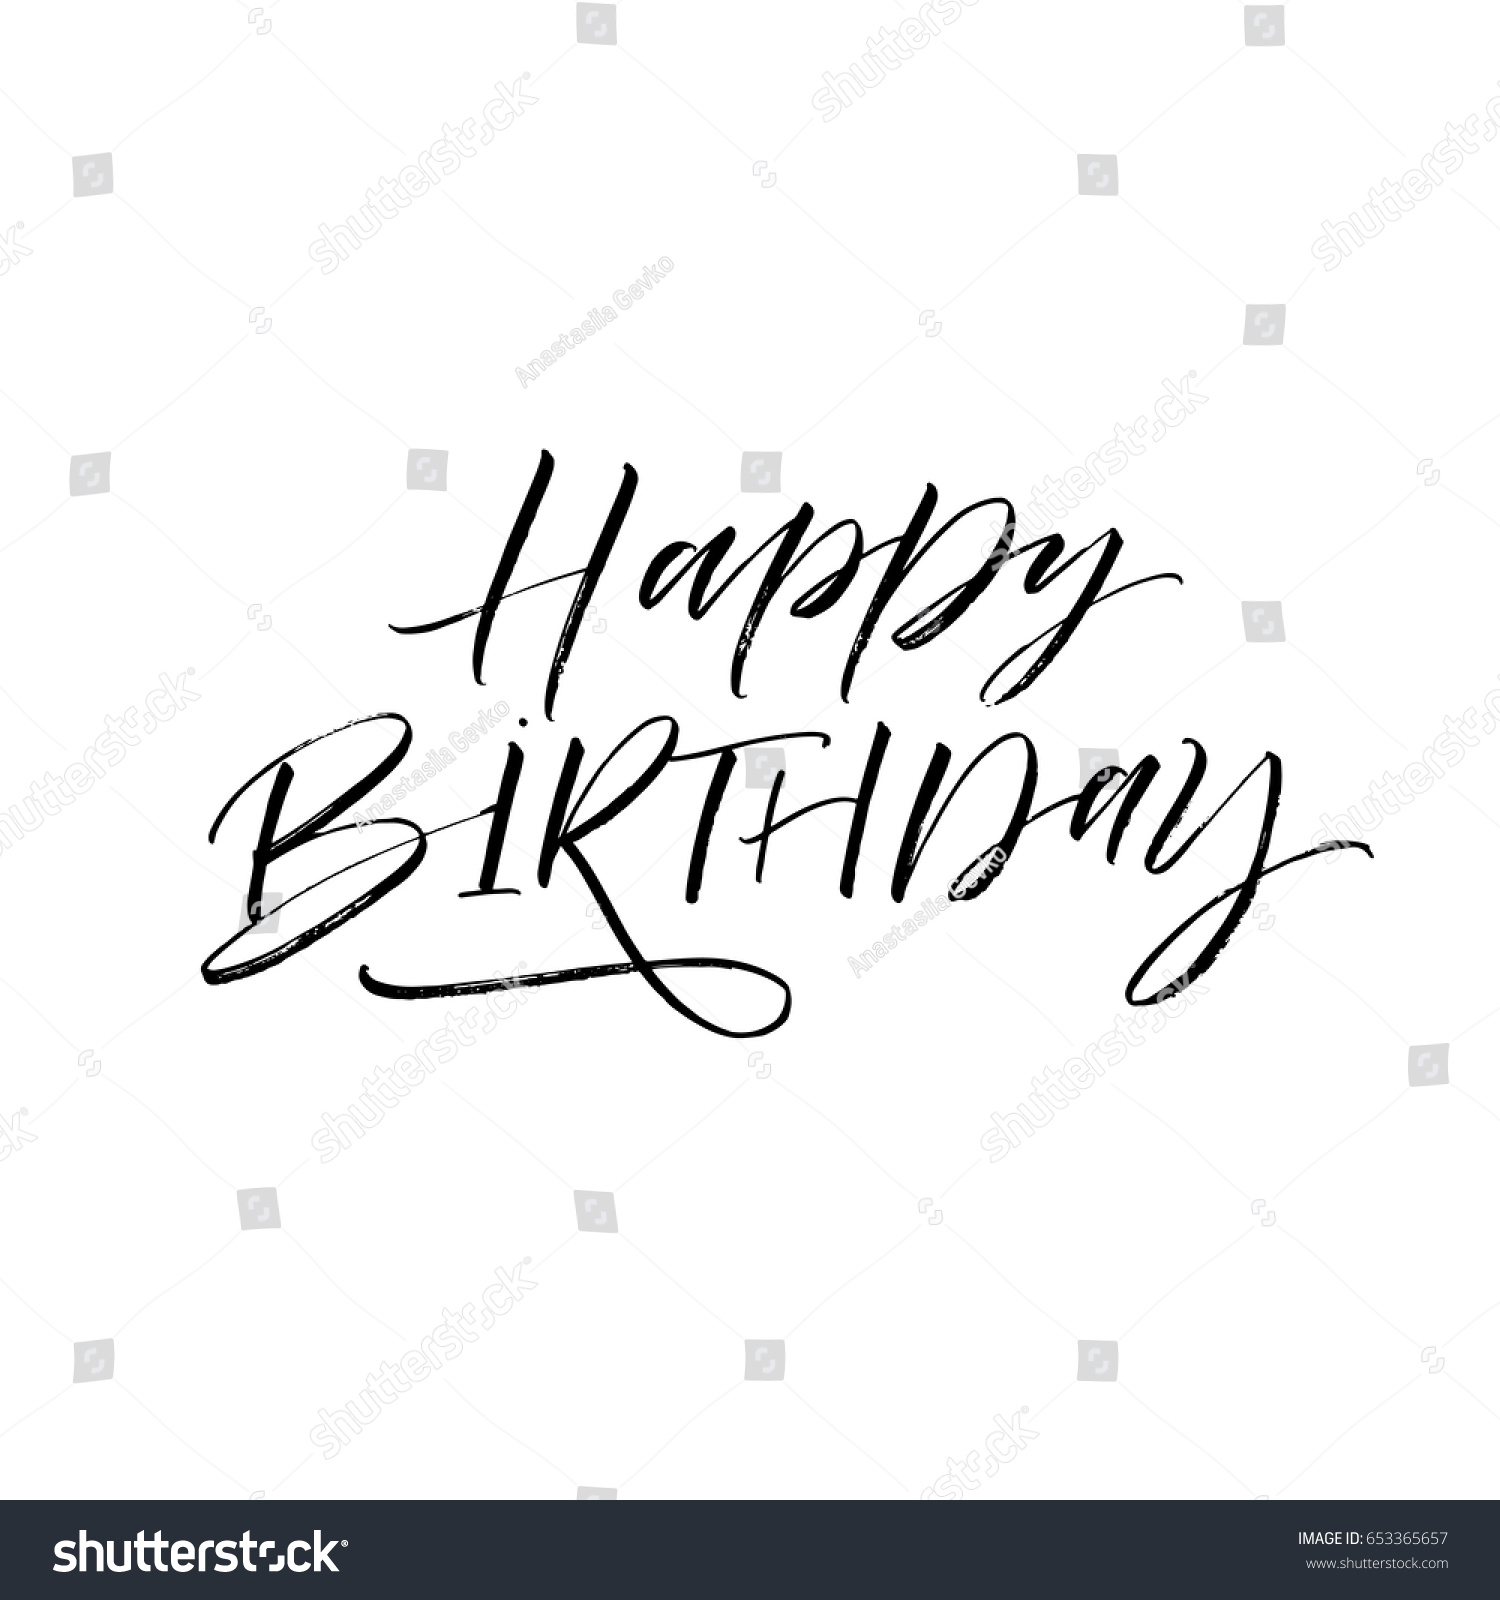 Happy birthday card ink illustration modern stock vector